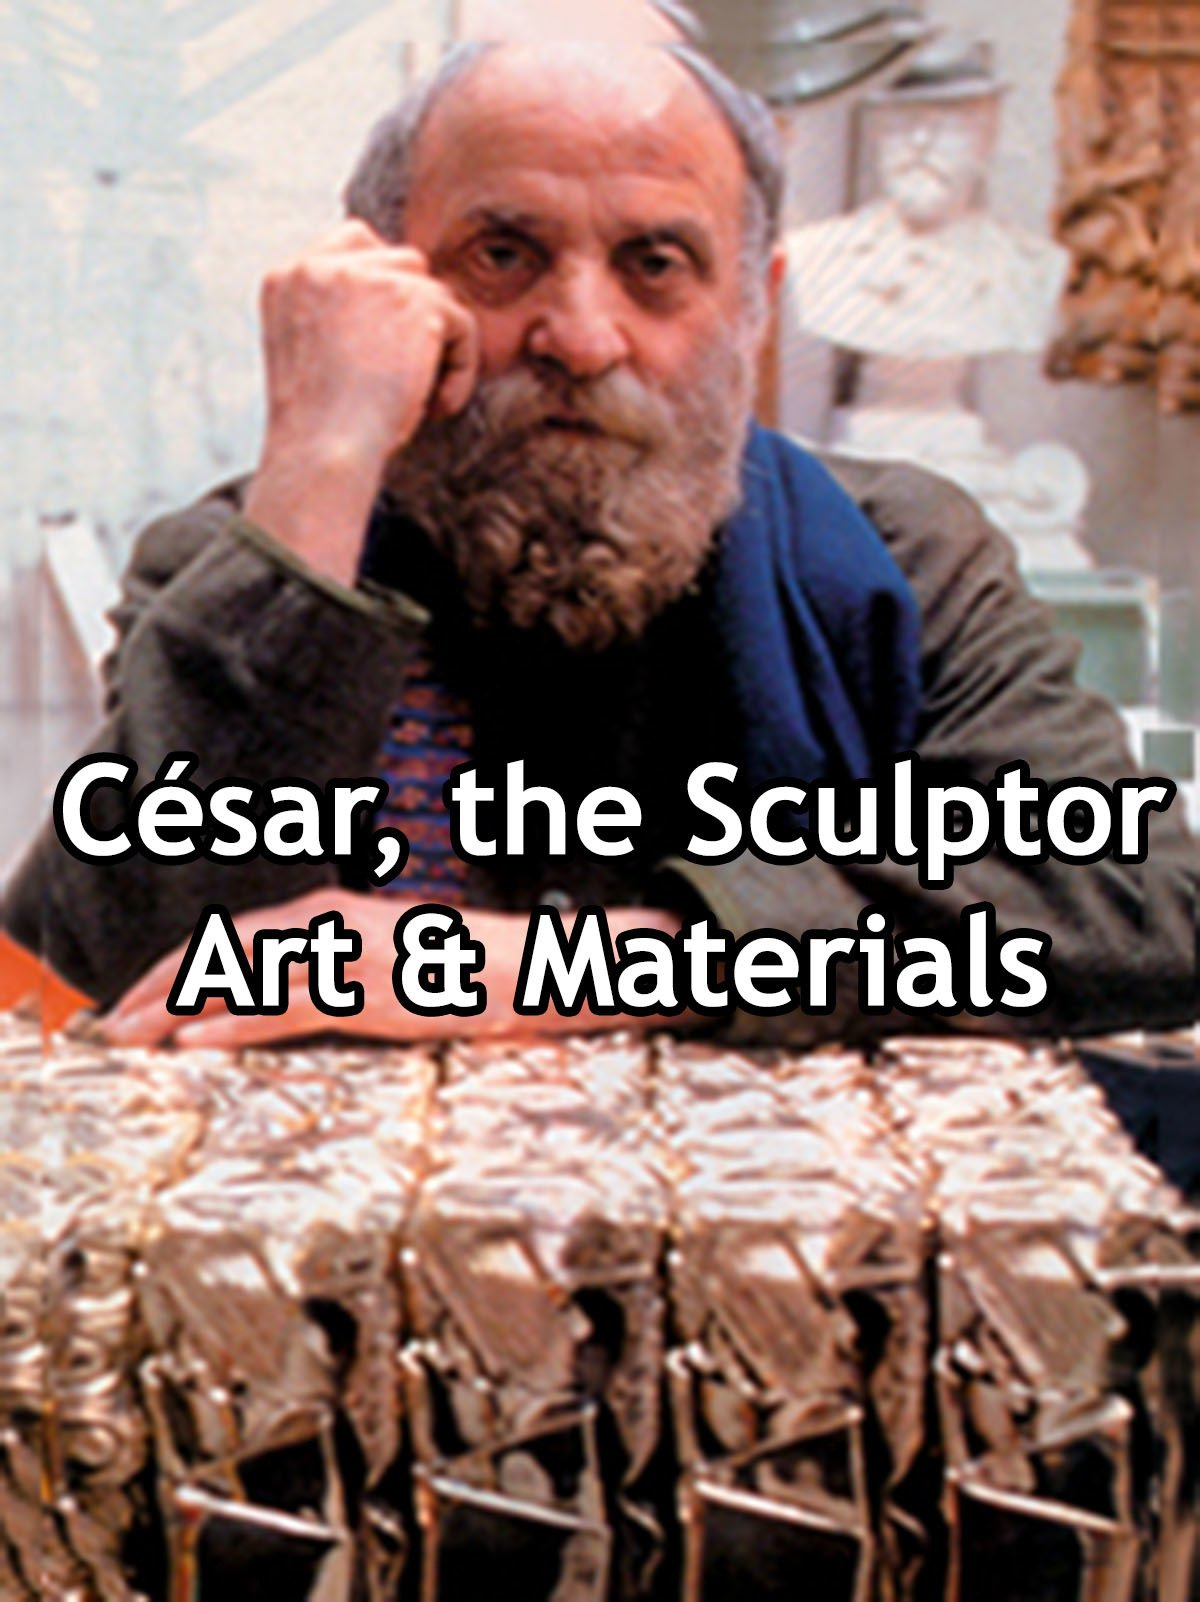 César, the Sculptor Art & Materials